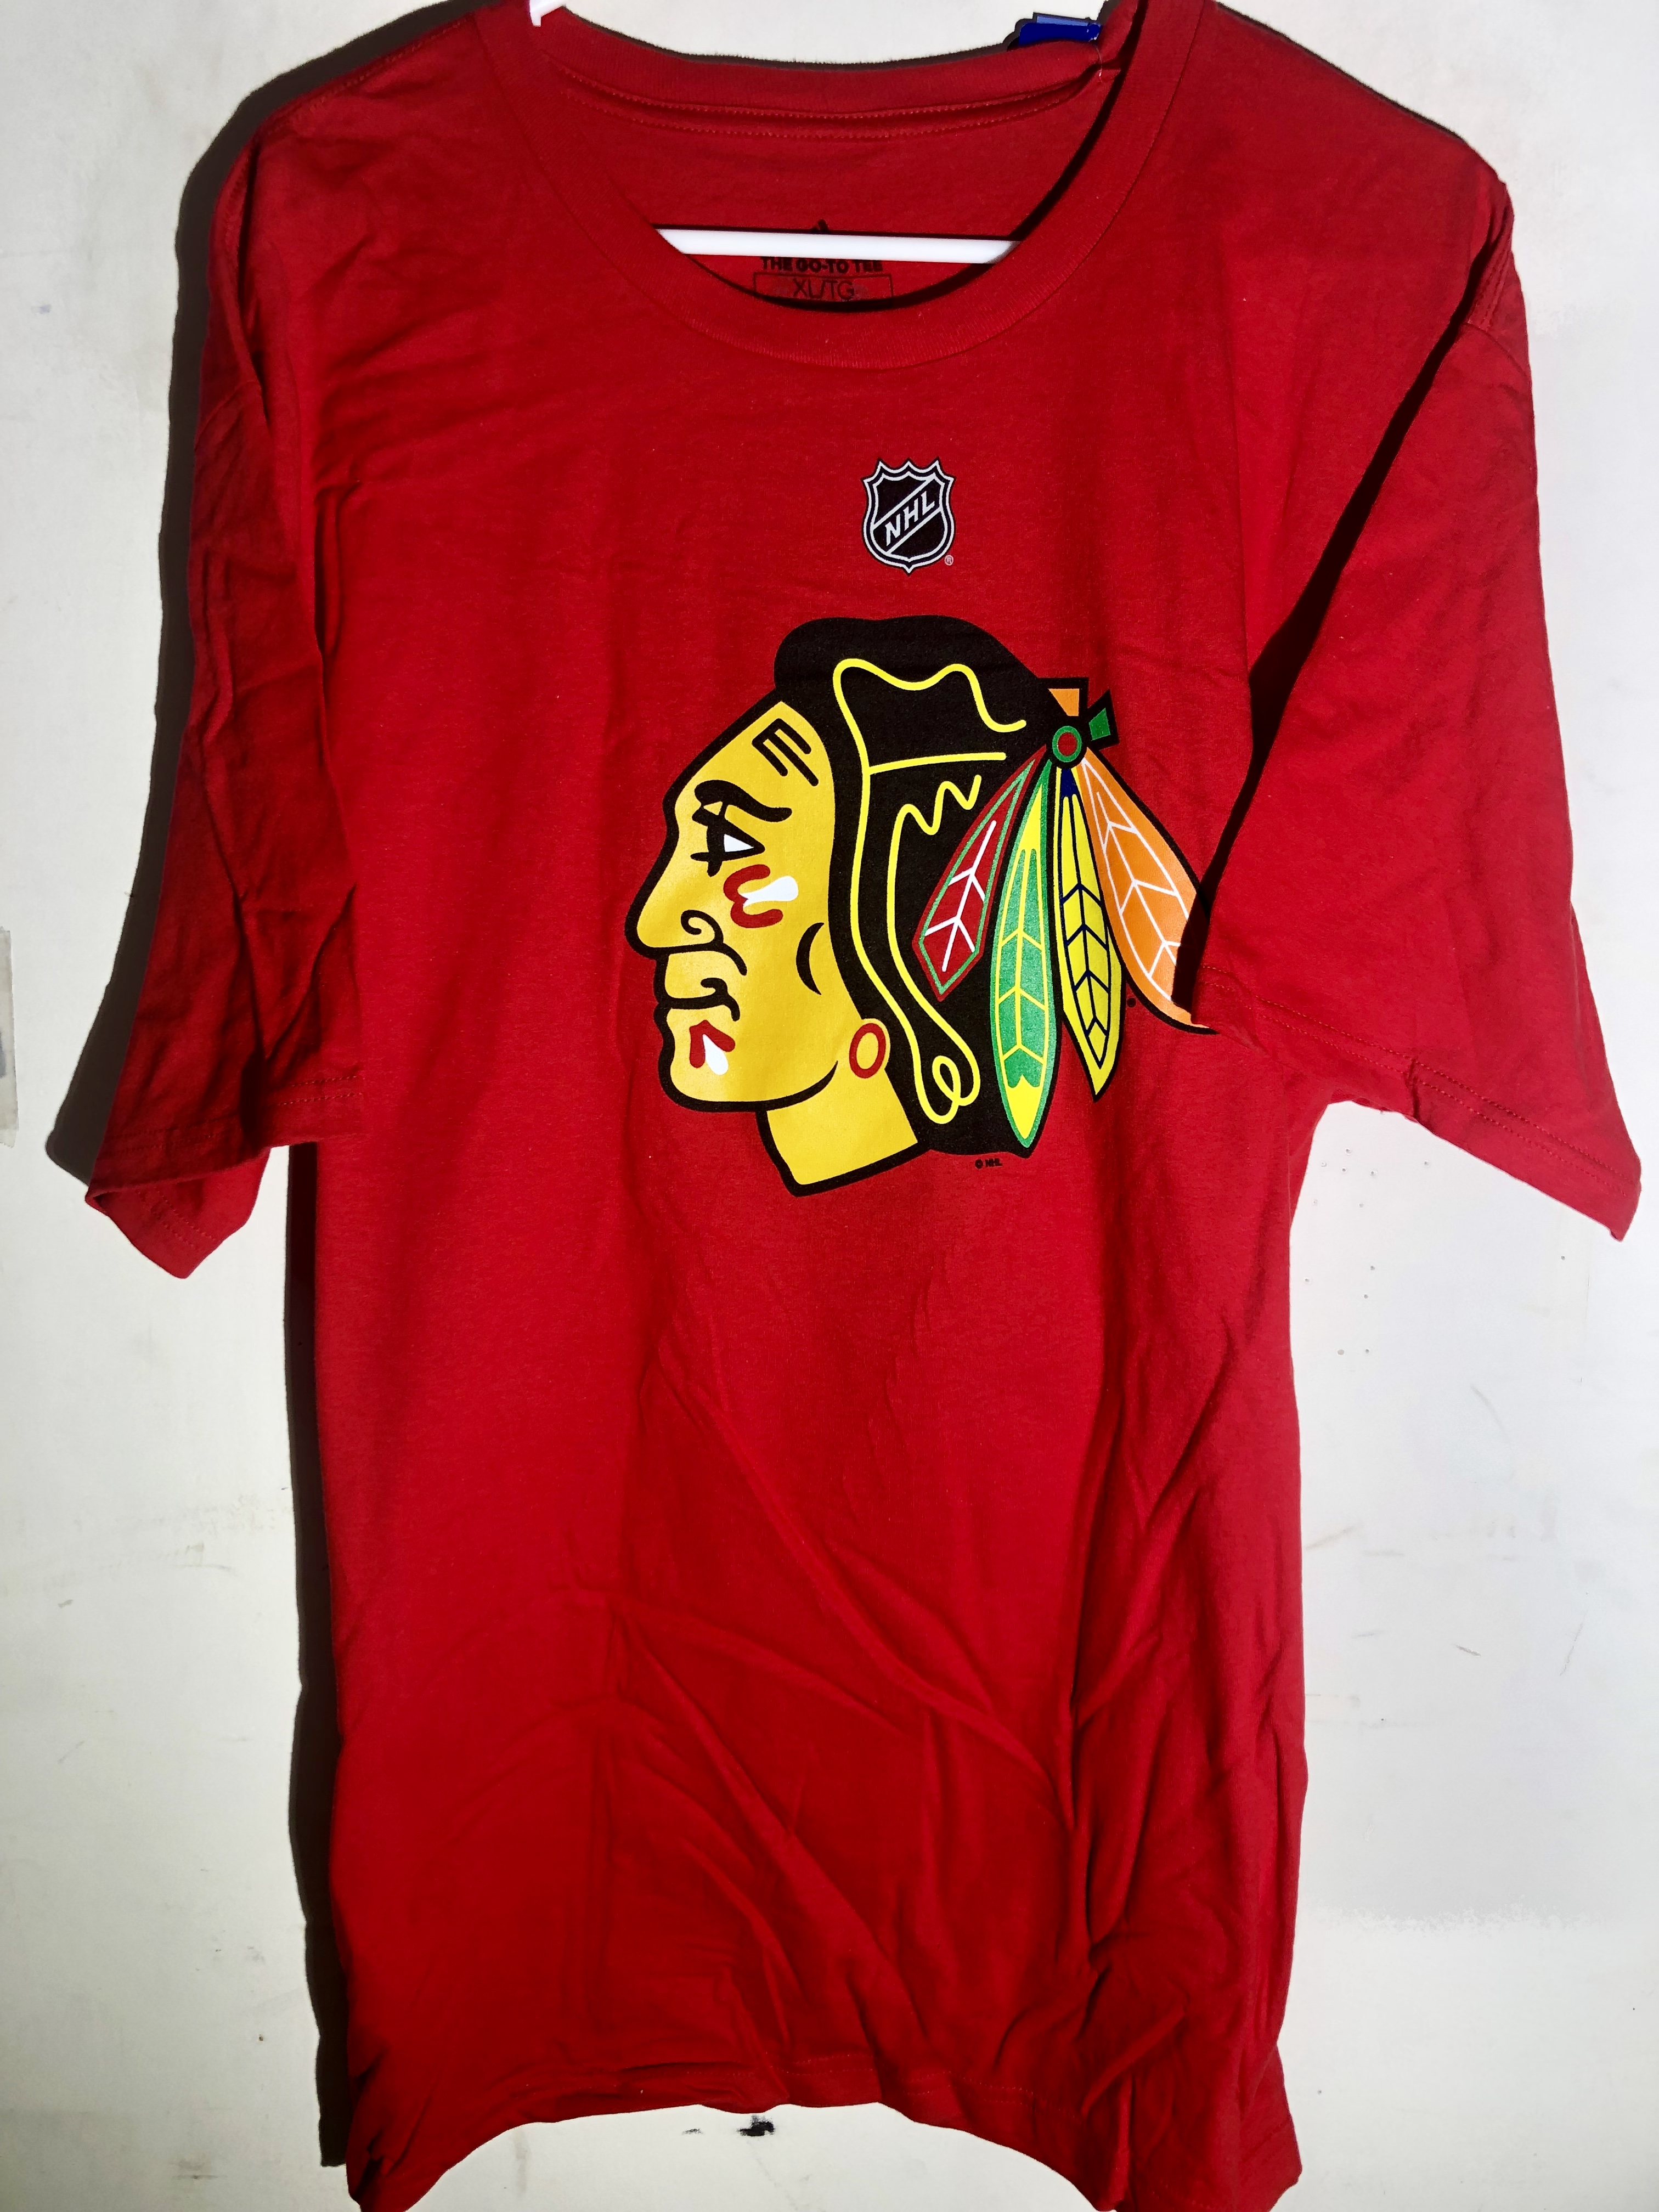 Red NHL Youths Brent Seabrook Chicago Blackhawks Short Sleeve Player Tee Boys